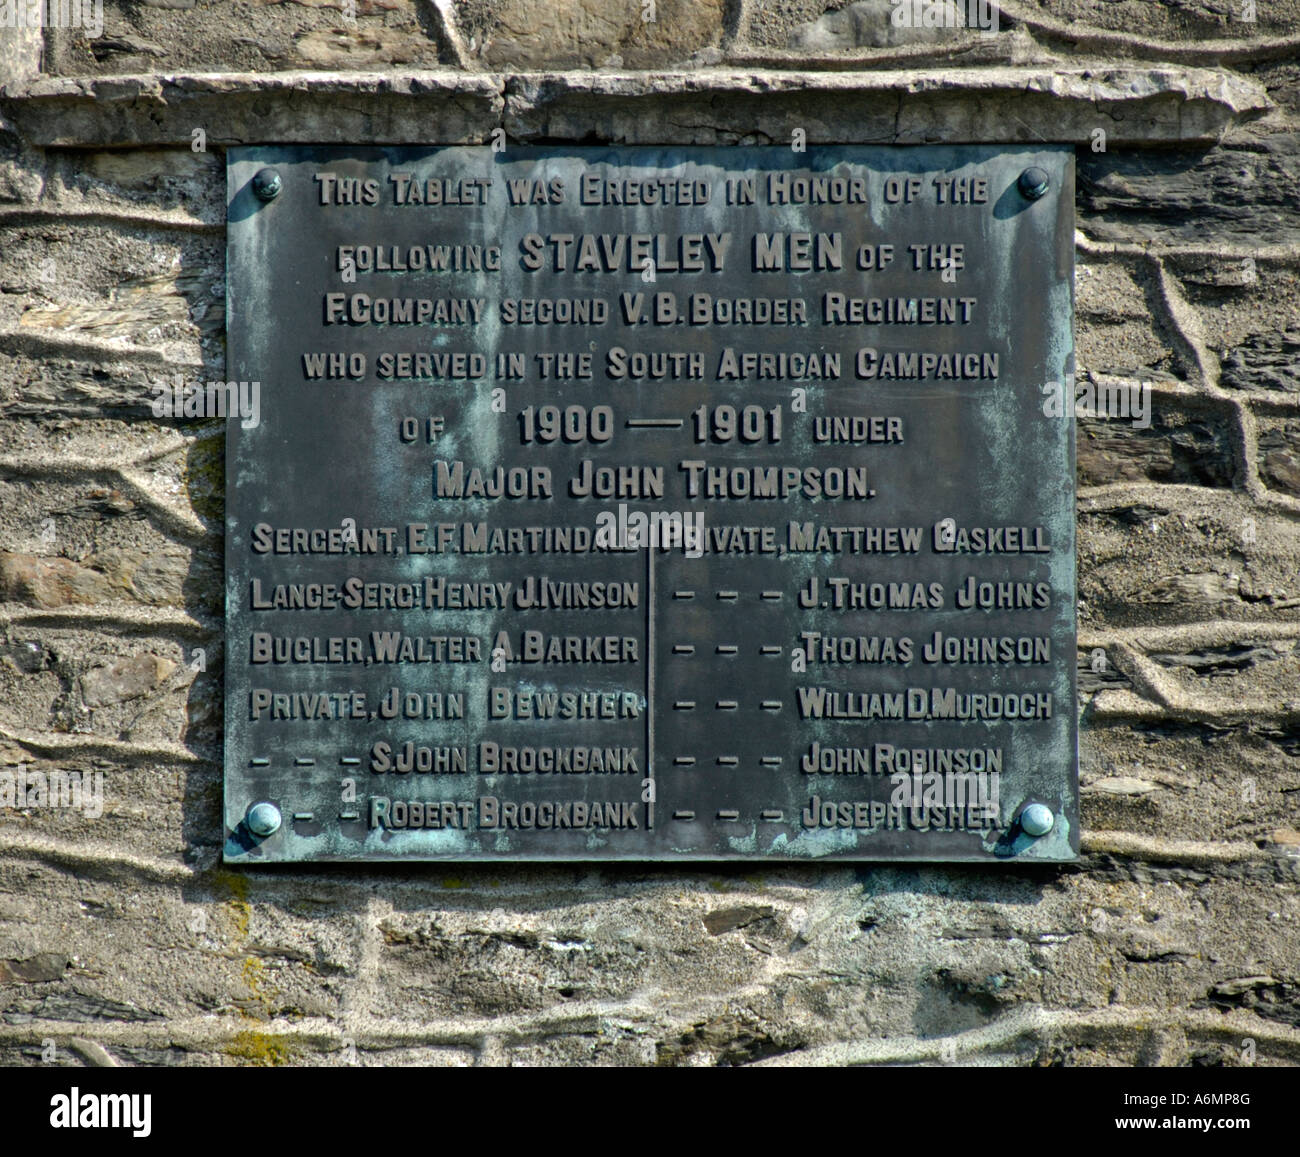 Memorial commemorating the South African (Boer) War. Tower of Saint Margaret's Chapel, Staveley. Lake District - Stock Image